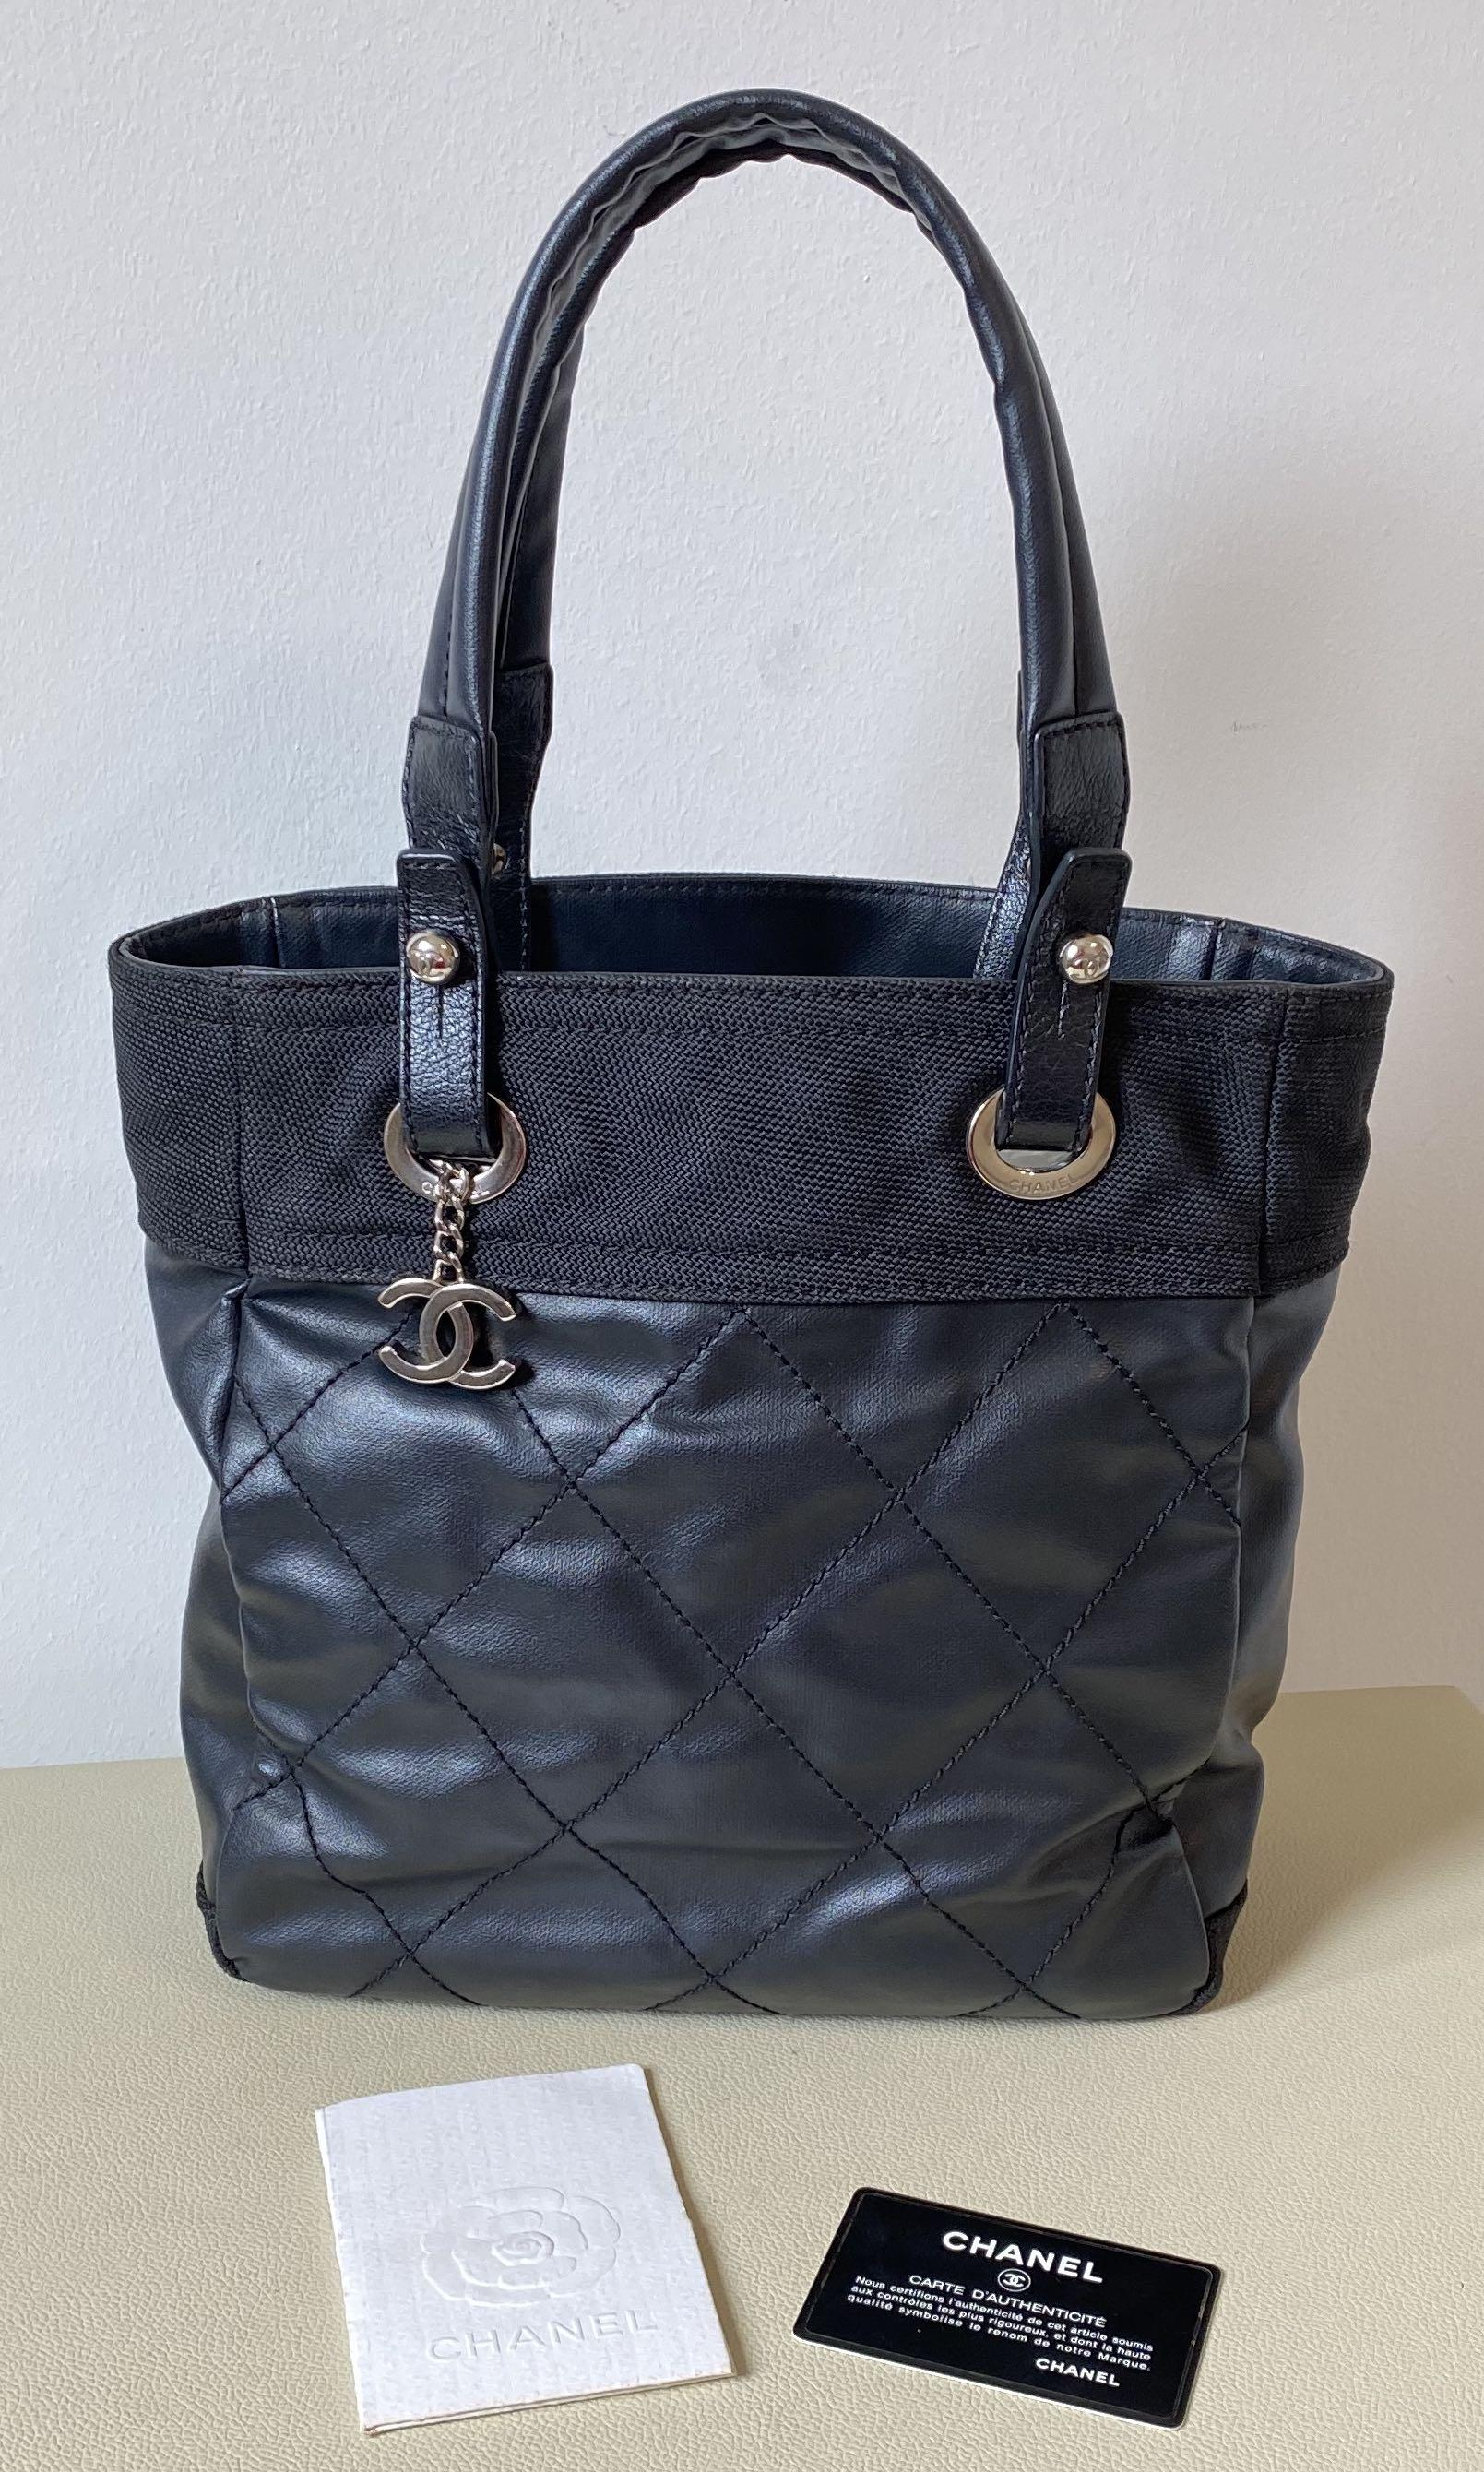 🎉PRICE REDUCED 🎊AUTHENTIC CHANEL PARIS BIARRITZ SMALL TOTE IN BLACK